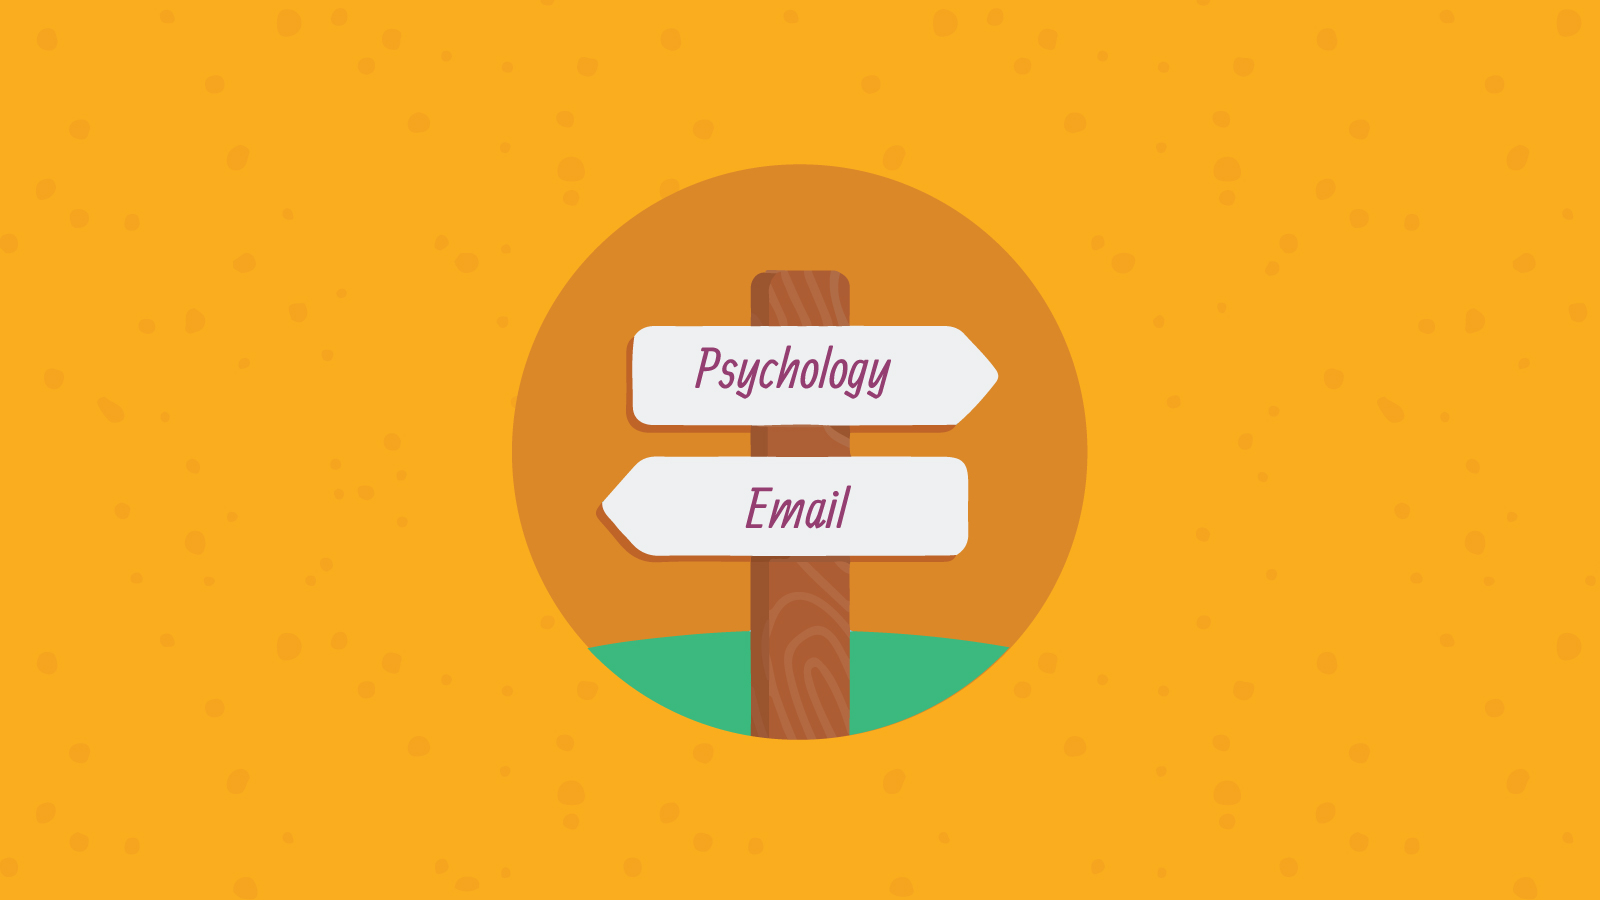 The psychology of email marketing